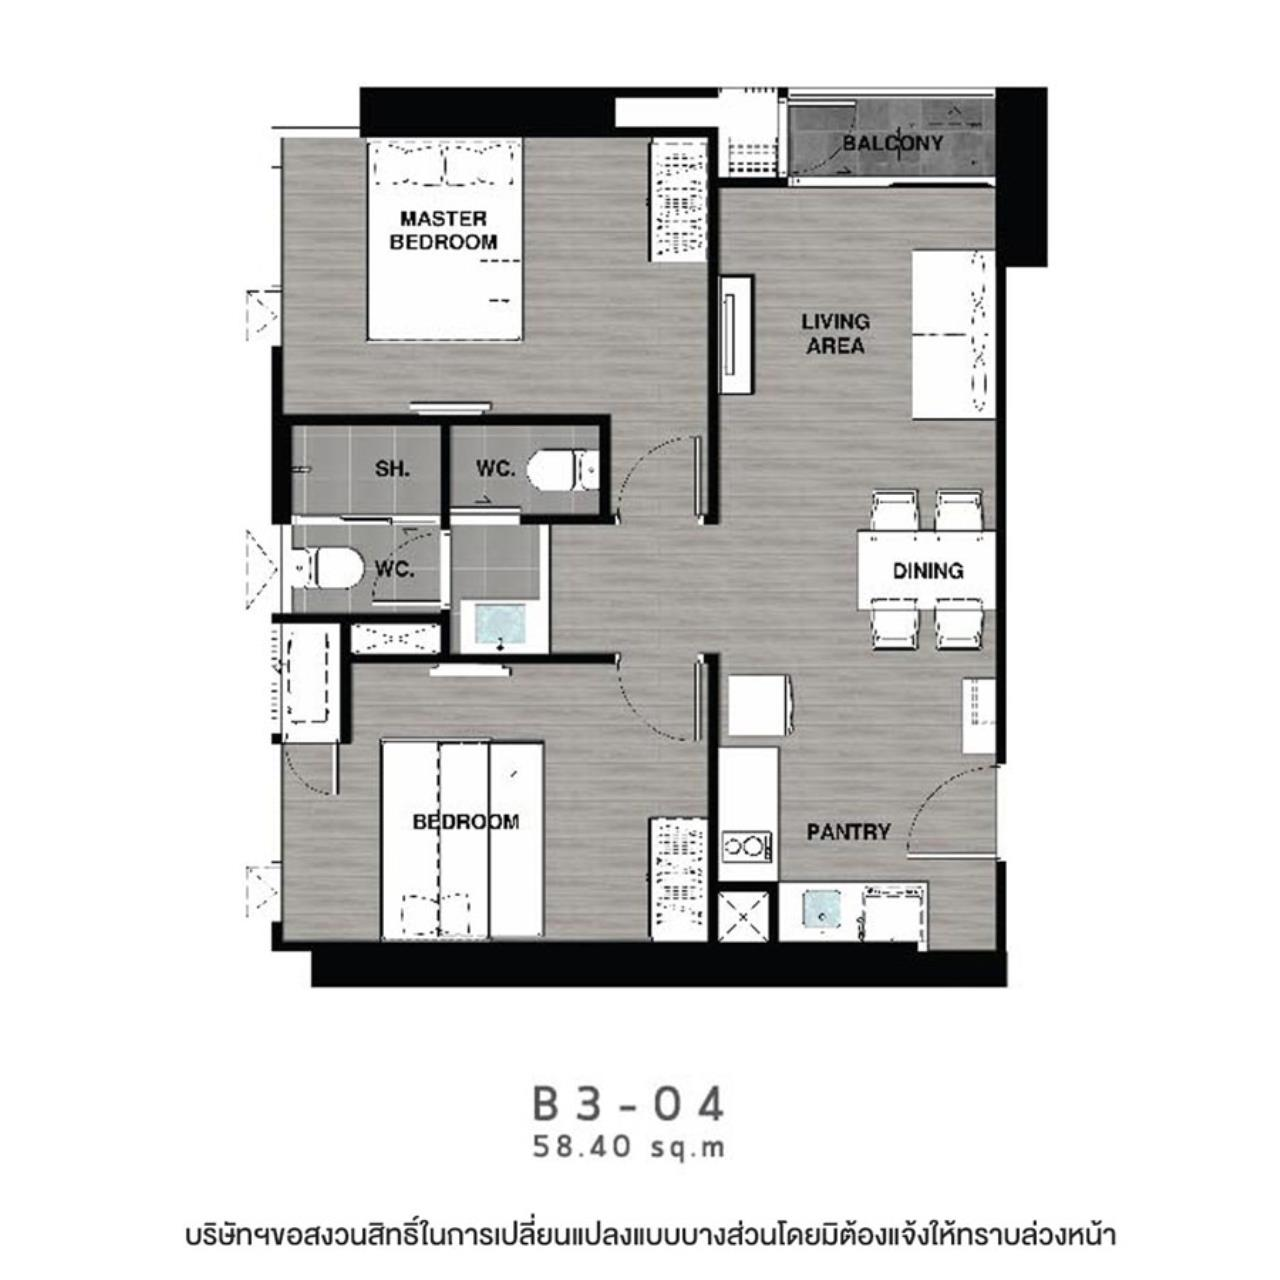 Centric C Realty Agency's Centric sea pattaya 2 Rd 10